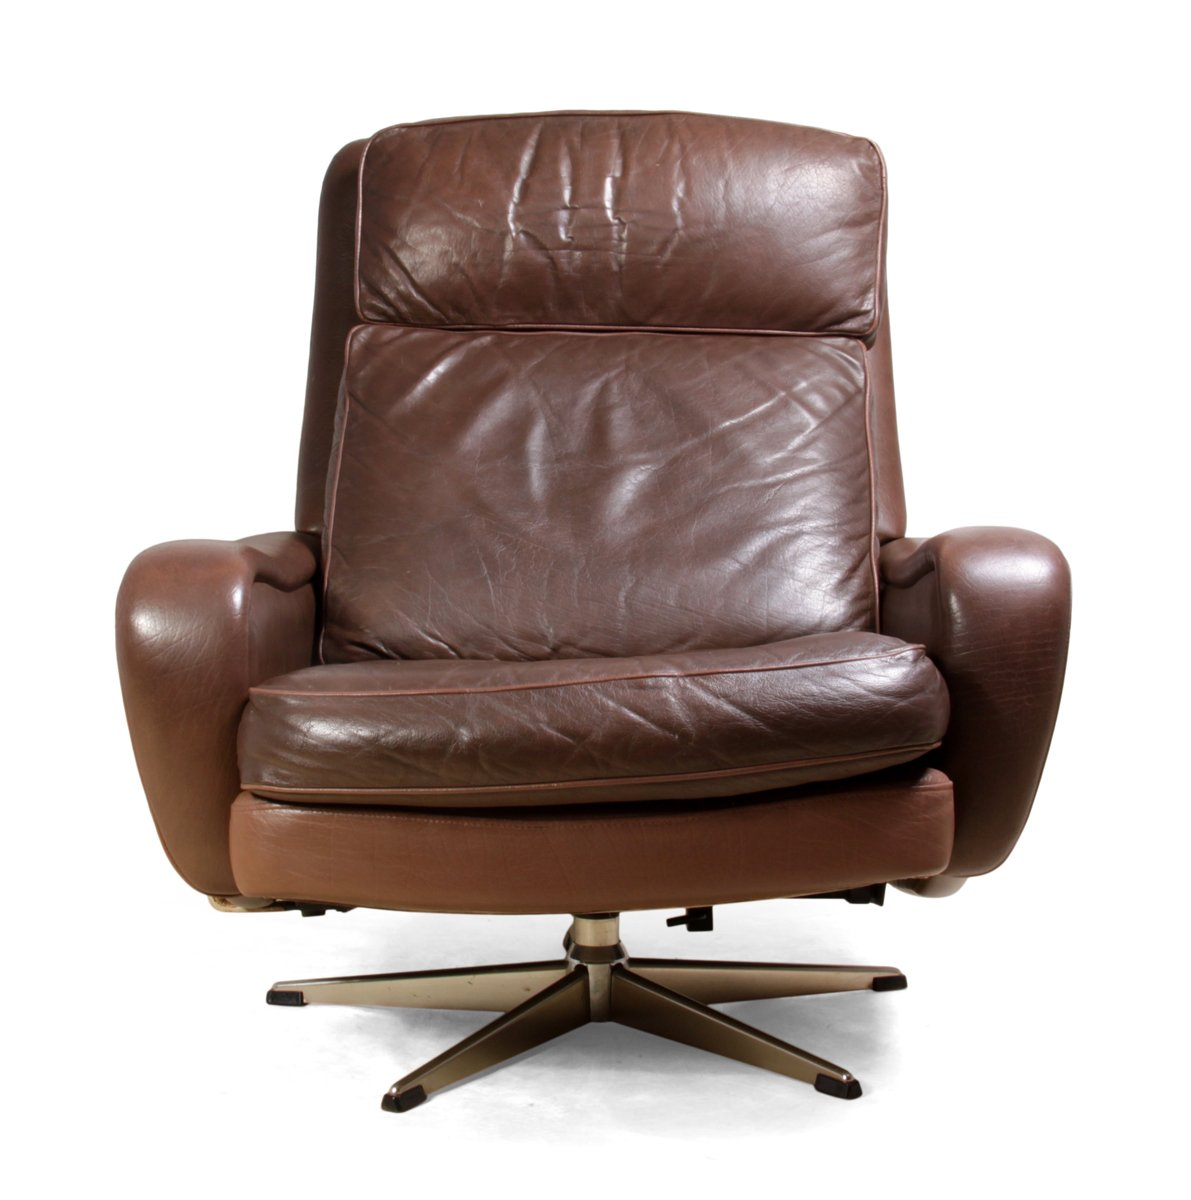 Danish Leather Reclining Swivel Man Cave Chair 1970s for